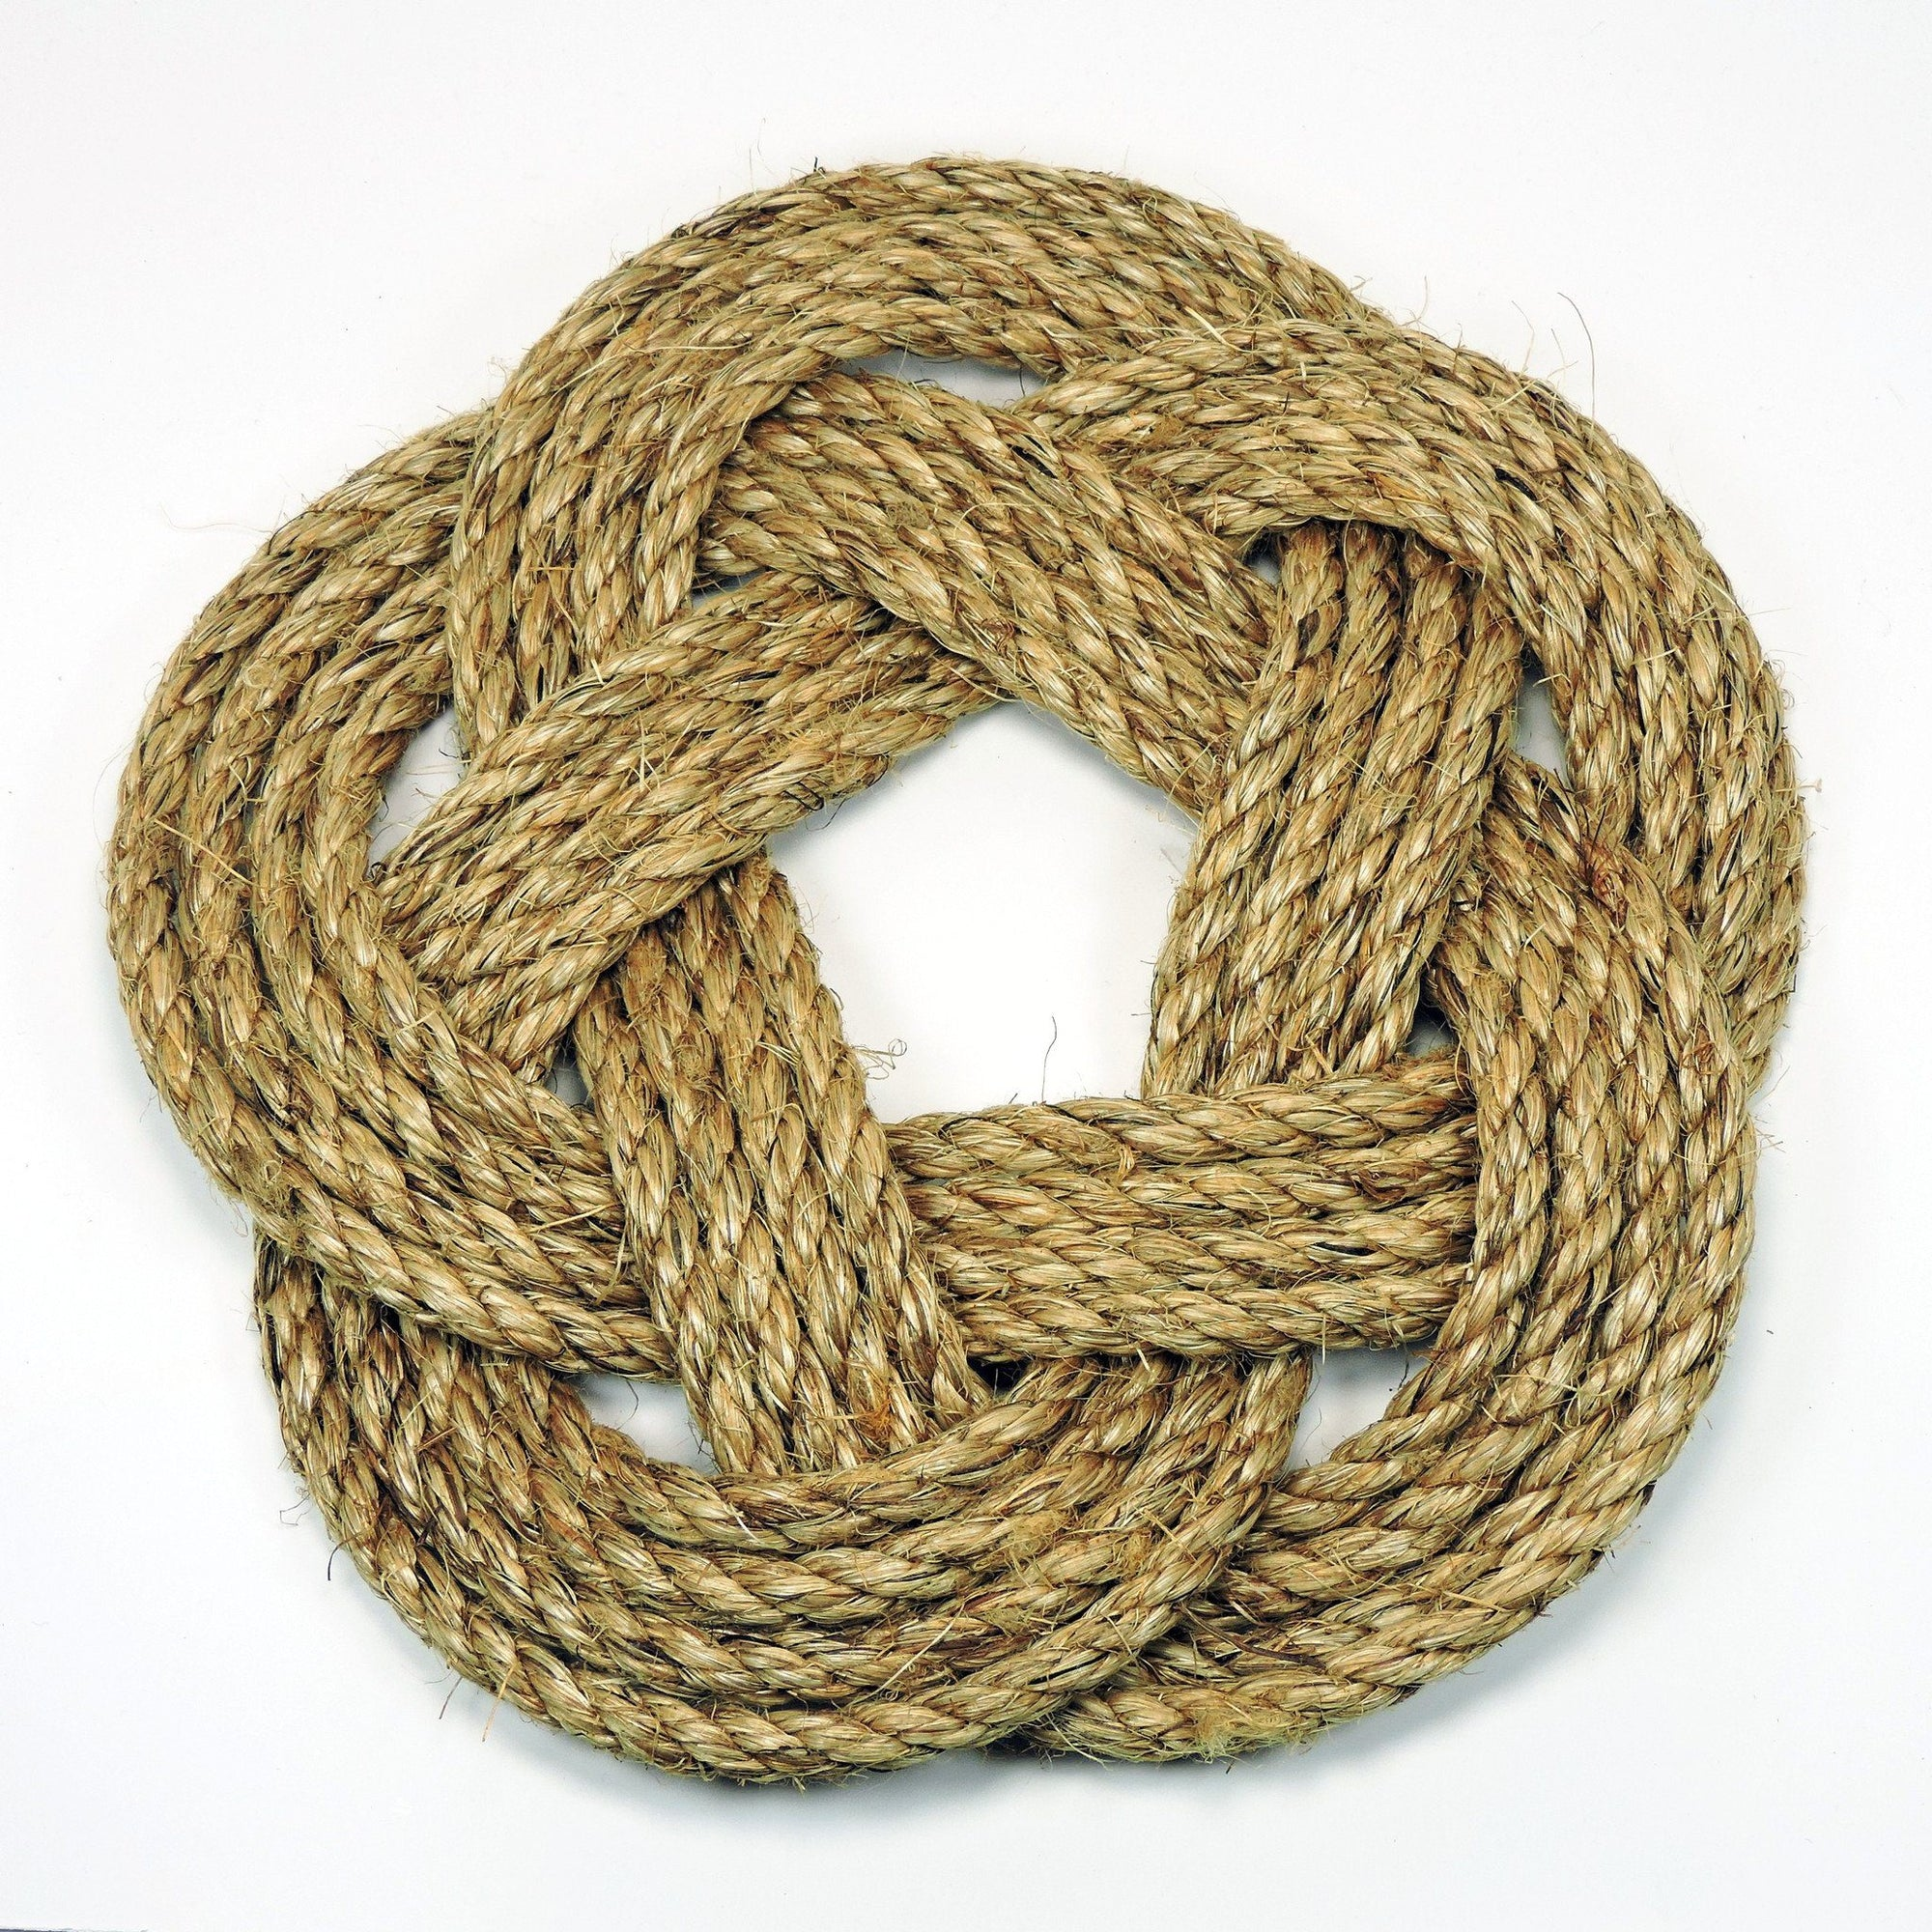 Nautical Knot Nautical Sailor Knot Trivet, Manila Rope, Large handmade at Mystic Knotwork